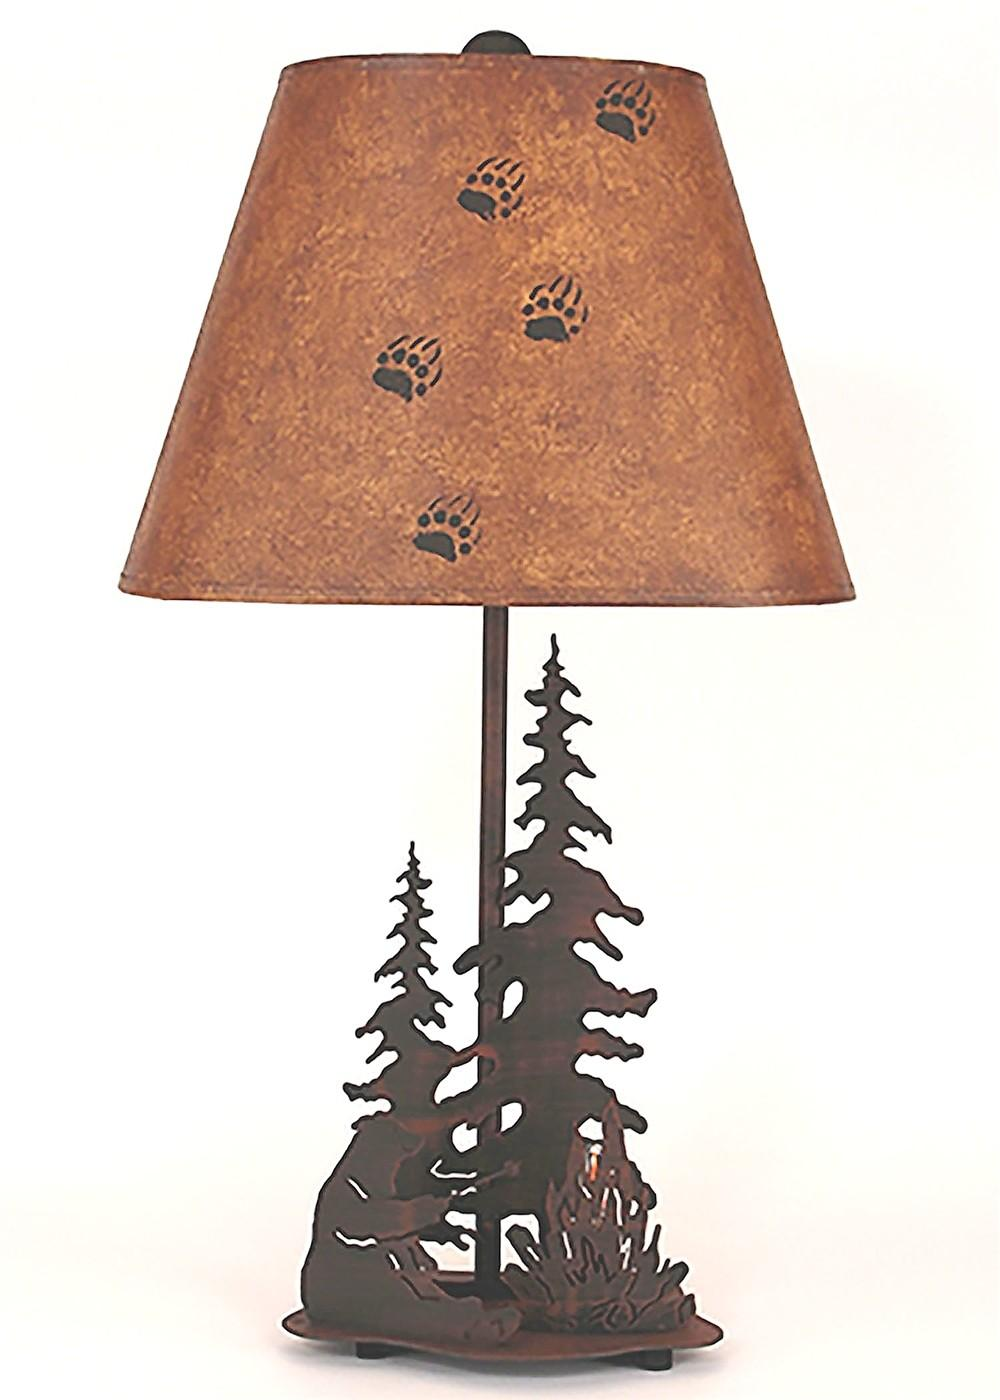 Feather Trees Bear Campfire Table Lamp